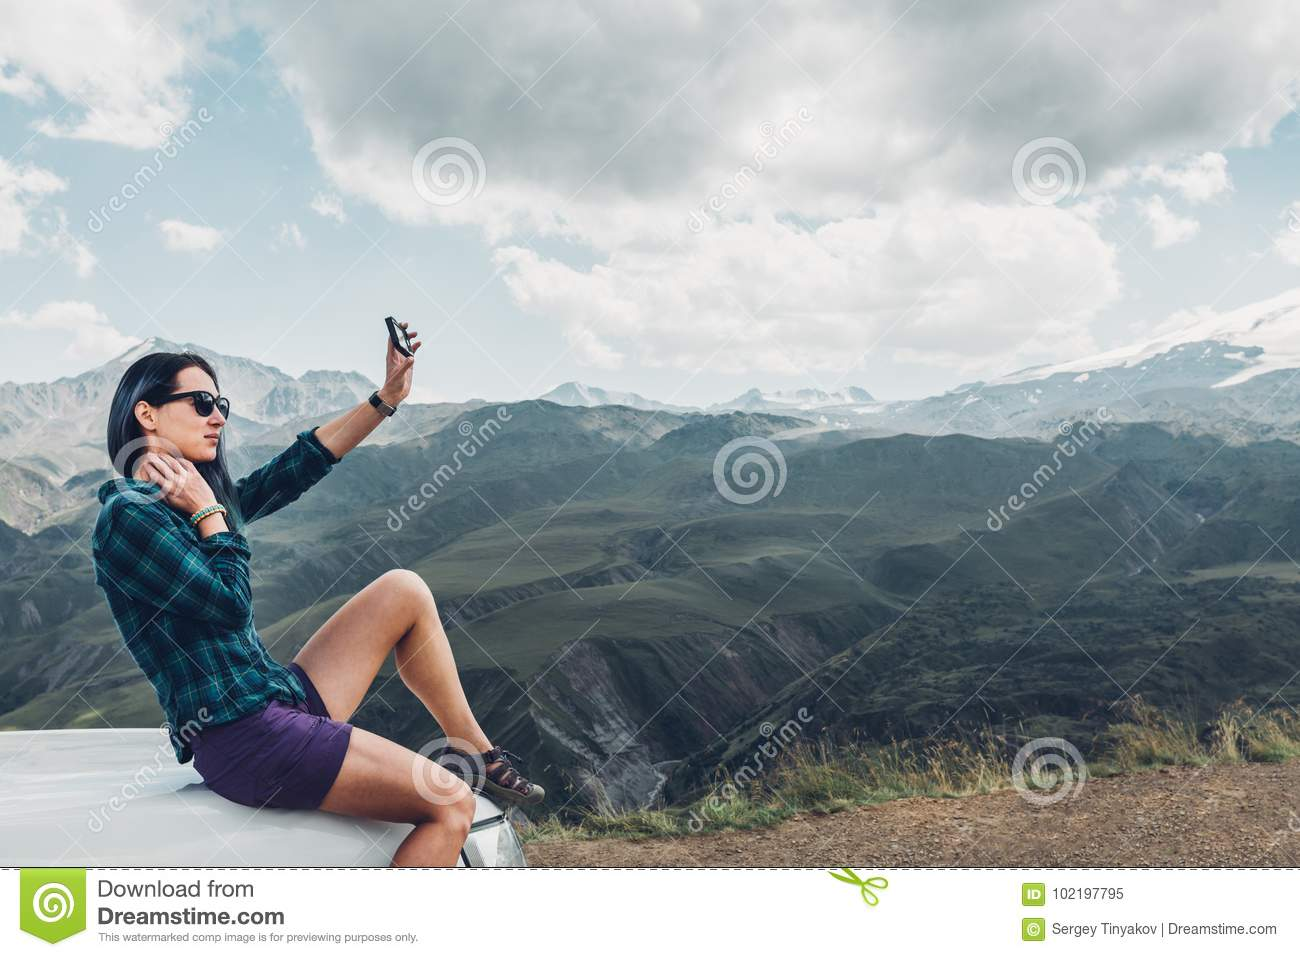 Young Girl Sits On Car And Makes Selfie On Smatrphone On Summer Mountain Background. Travel Discovery Journey Concept